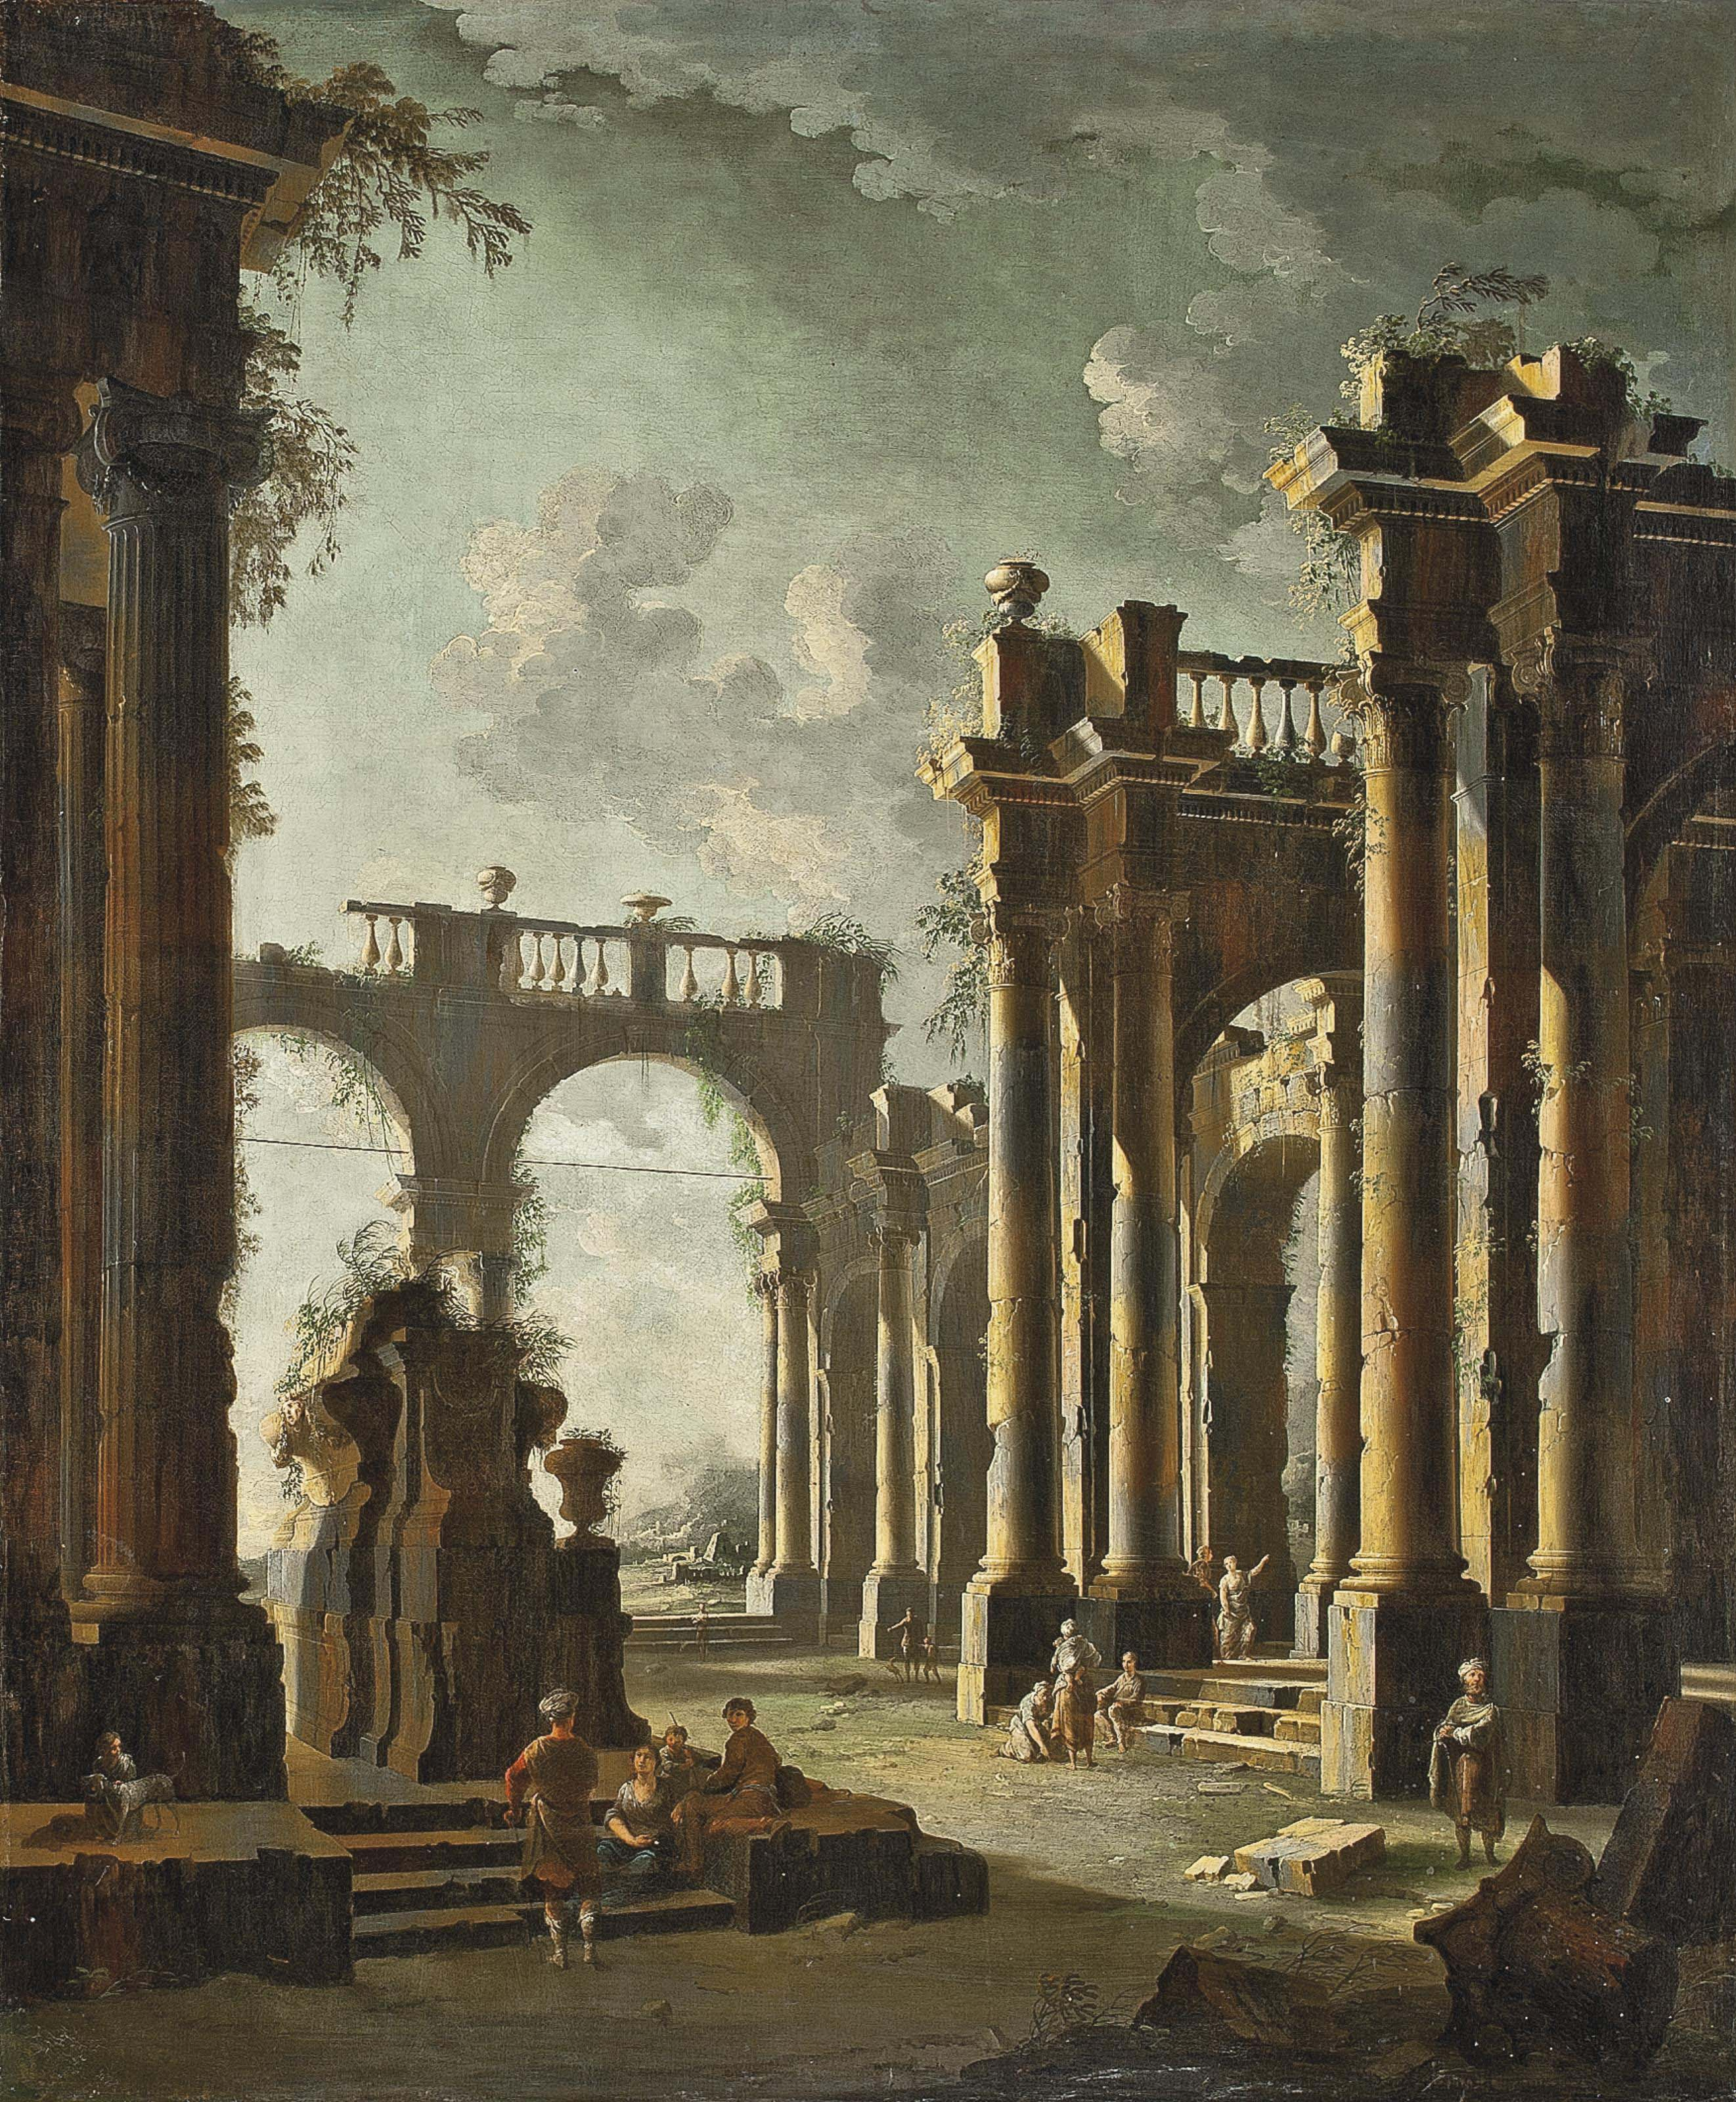 An architectural capriccio of classical ruins with figures conversing